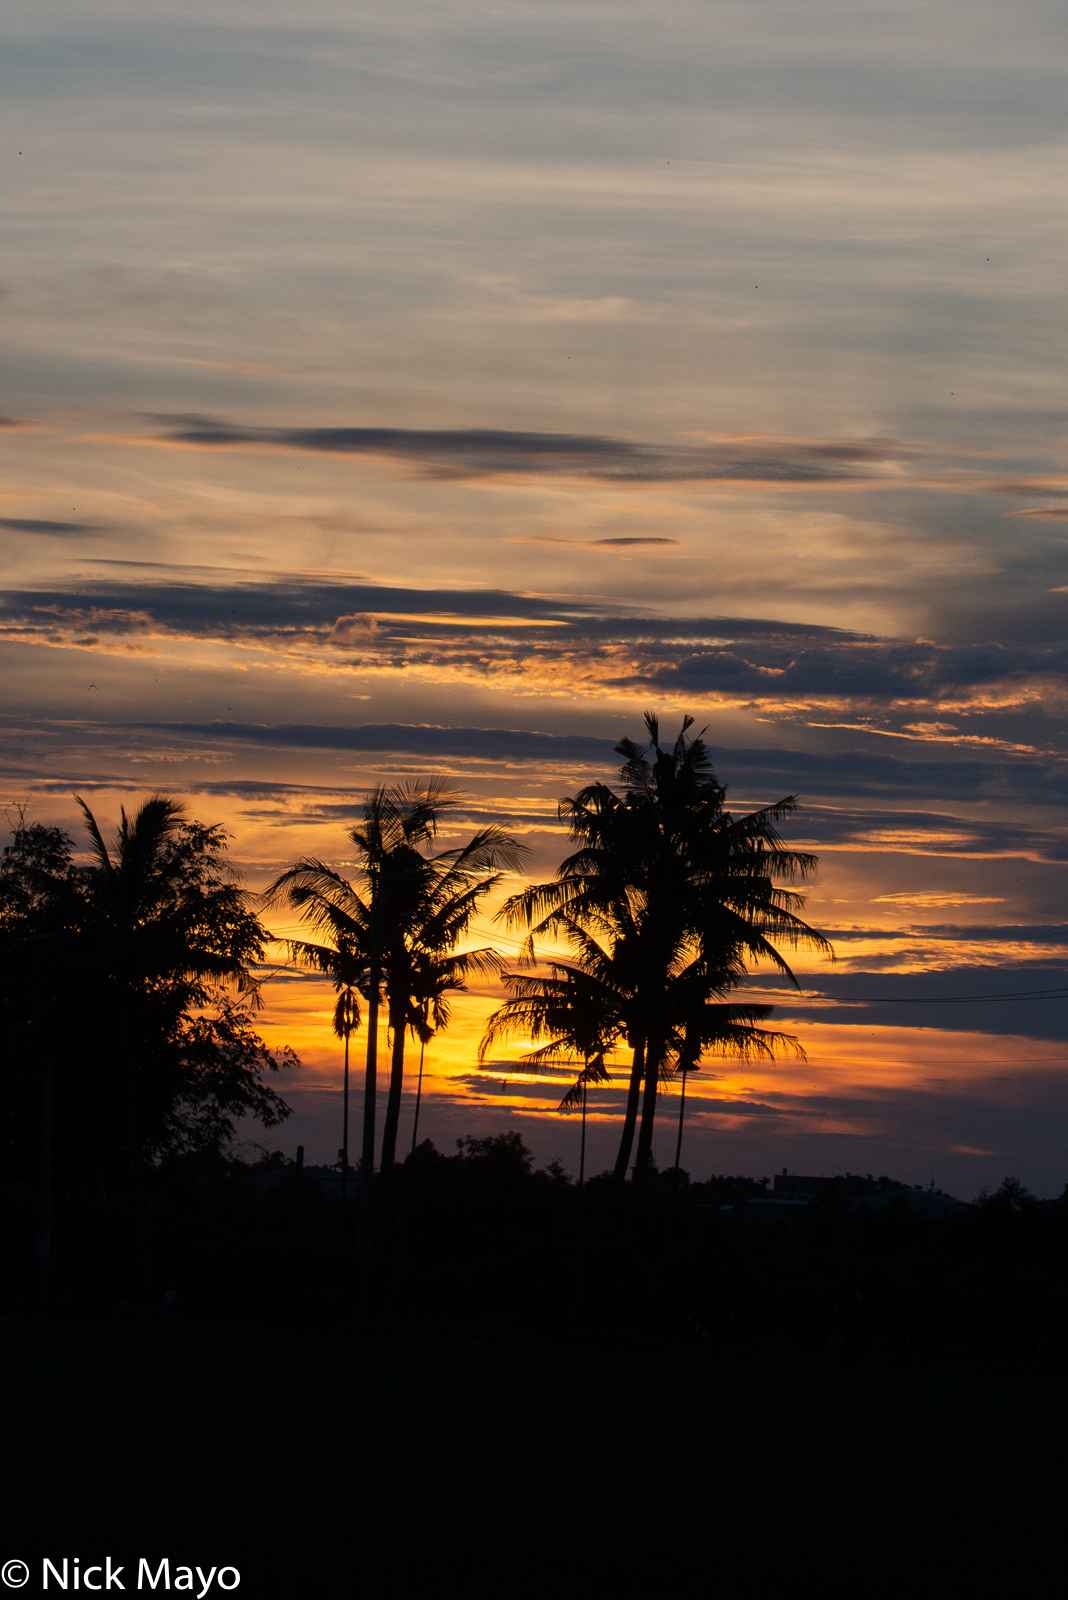 Coconut palms silhouetted by the setting sun at Shanzihjiao in Tainan County.